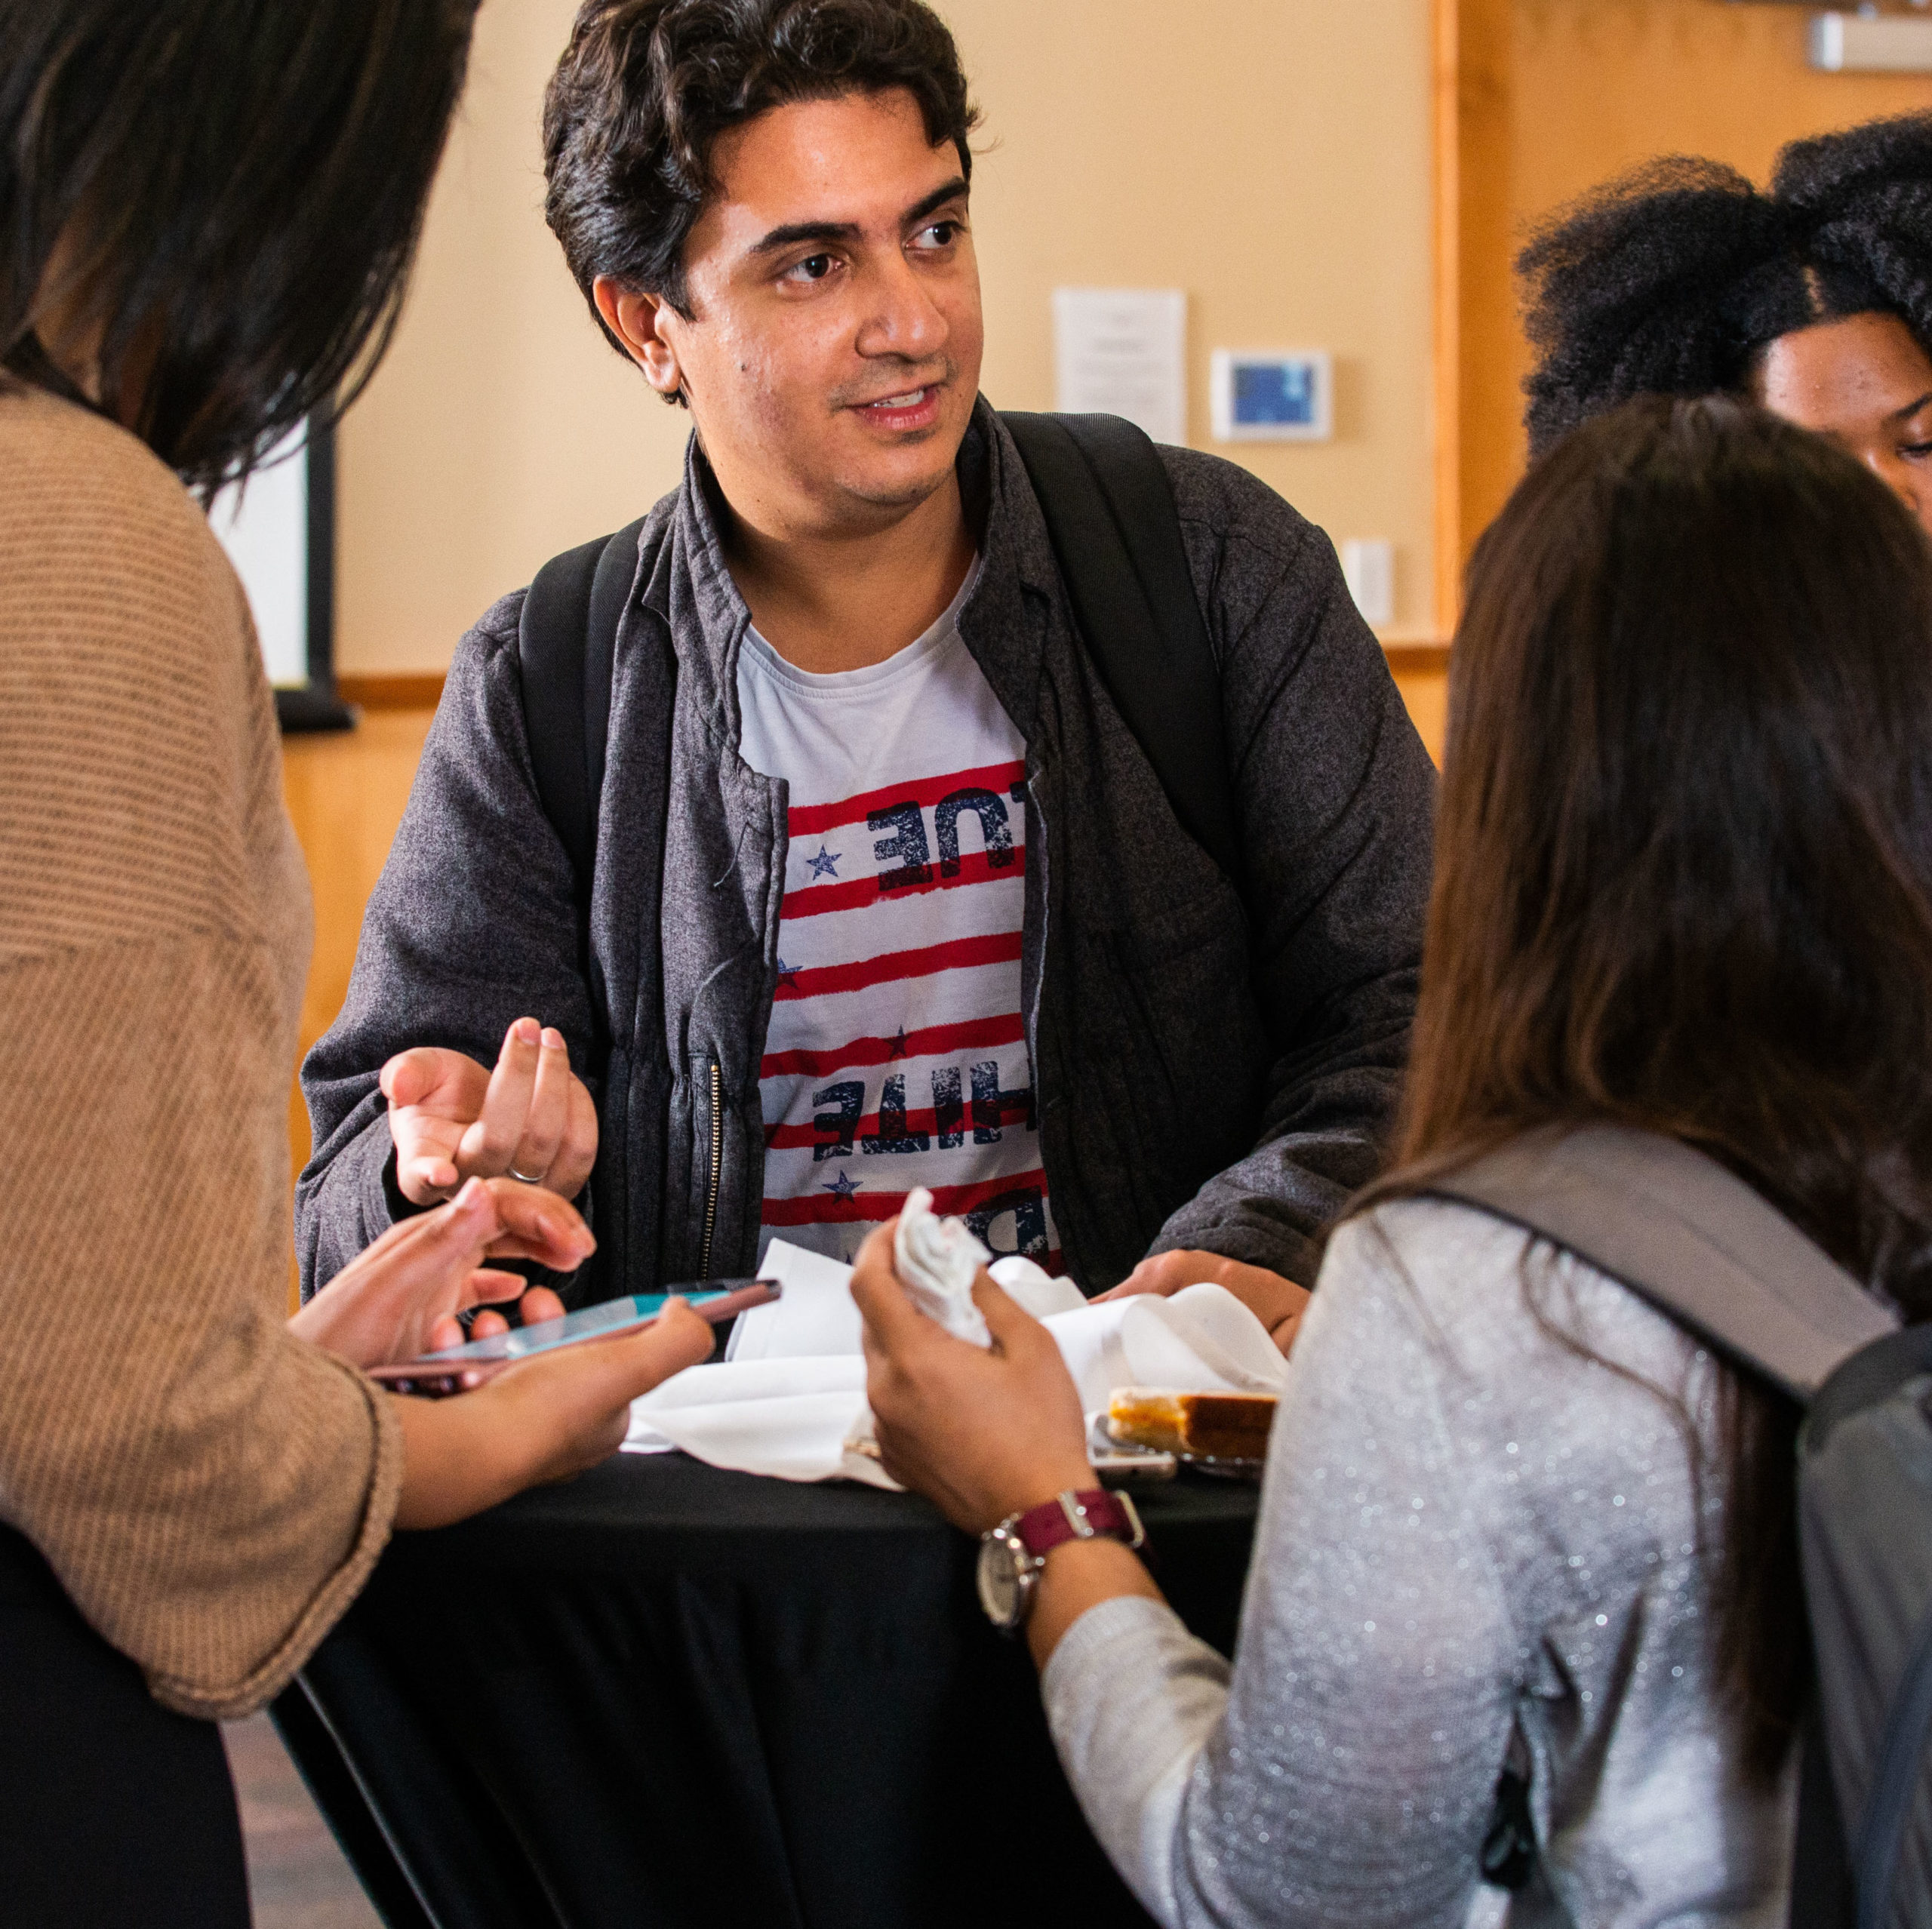 Students having a conversation around a table.